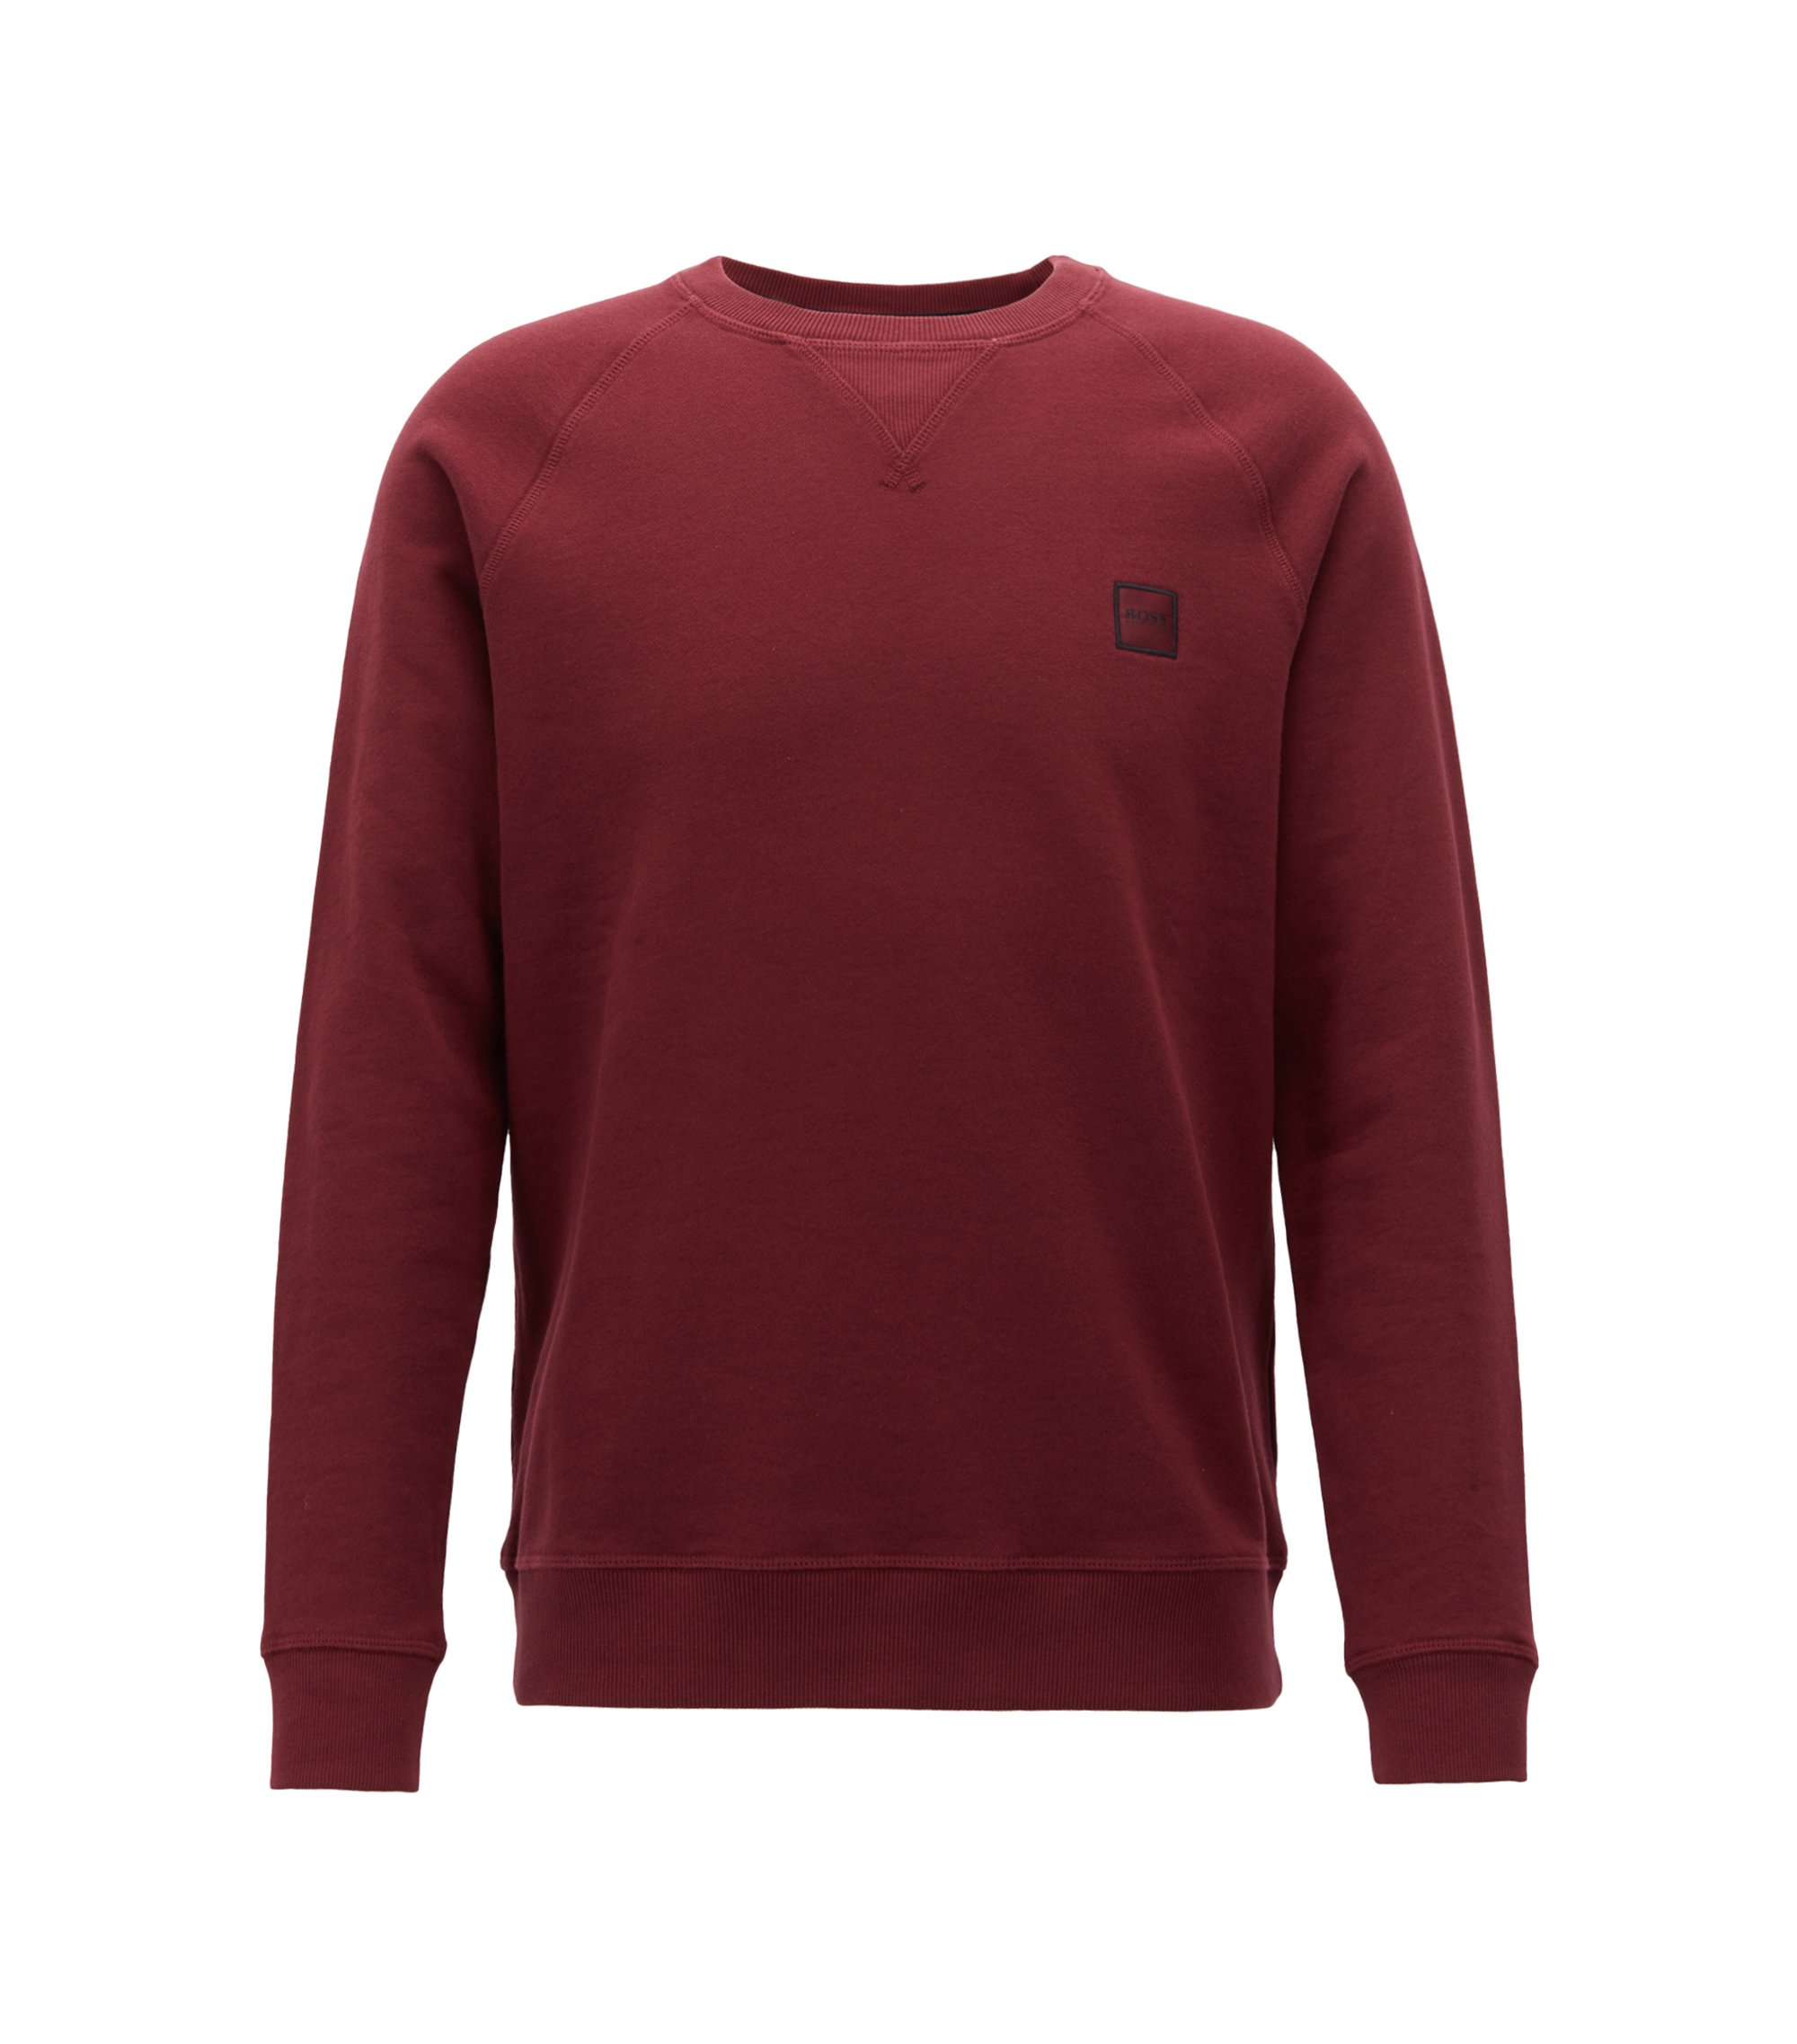 Sweat en molleton French Terry à patch logo, Rouge sombre